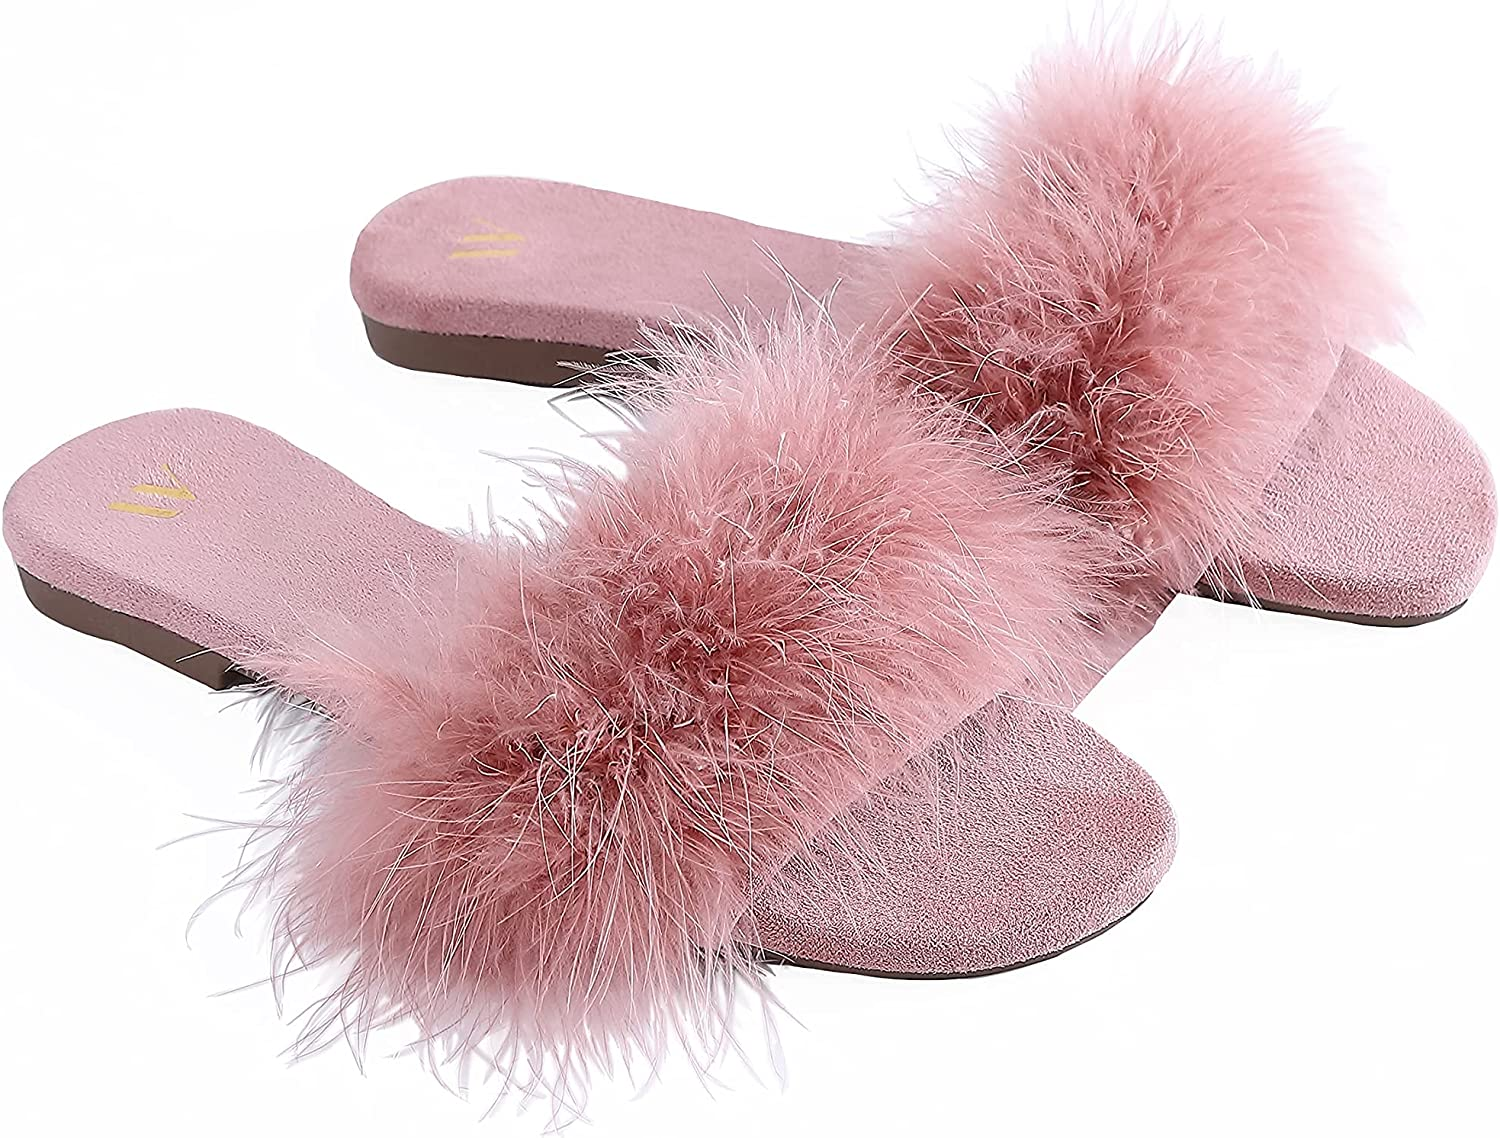 Amélie Home Women's Sexy Fashion Fuzzy Turkey Feather Open Toe Slide Slipper Cozy Real Fur Comfy Micro Suede Lined House Slipper Sandal Indoor Outdoor For Spring Summer